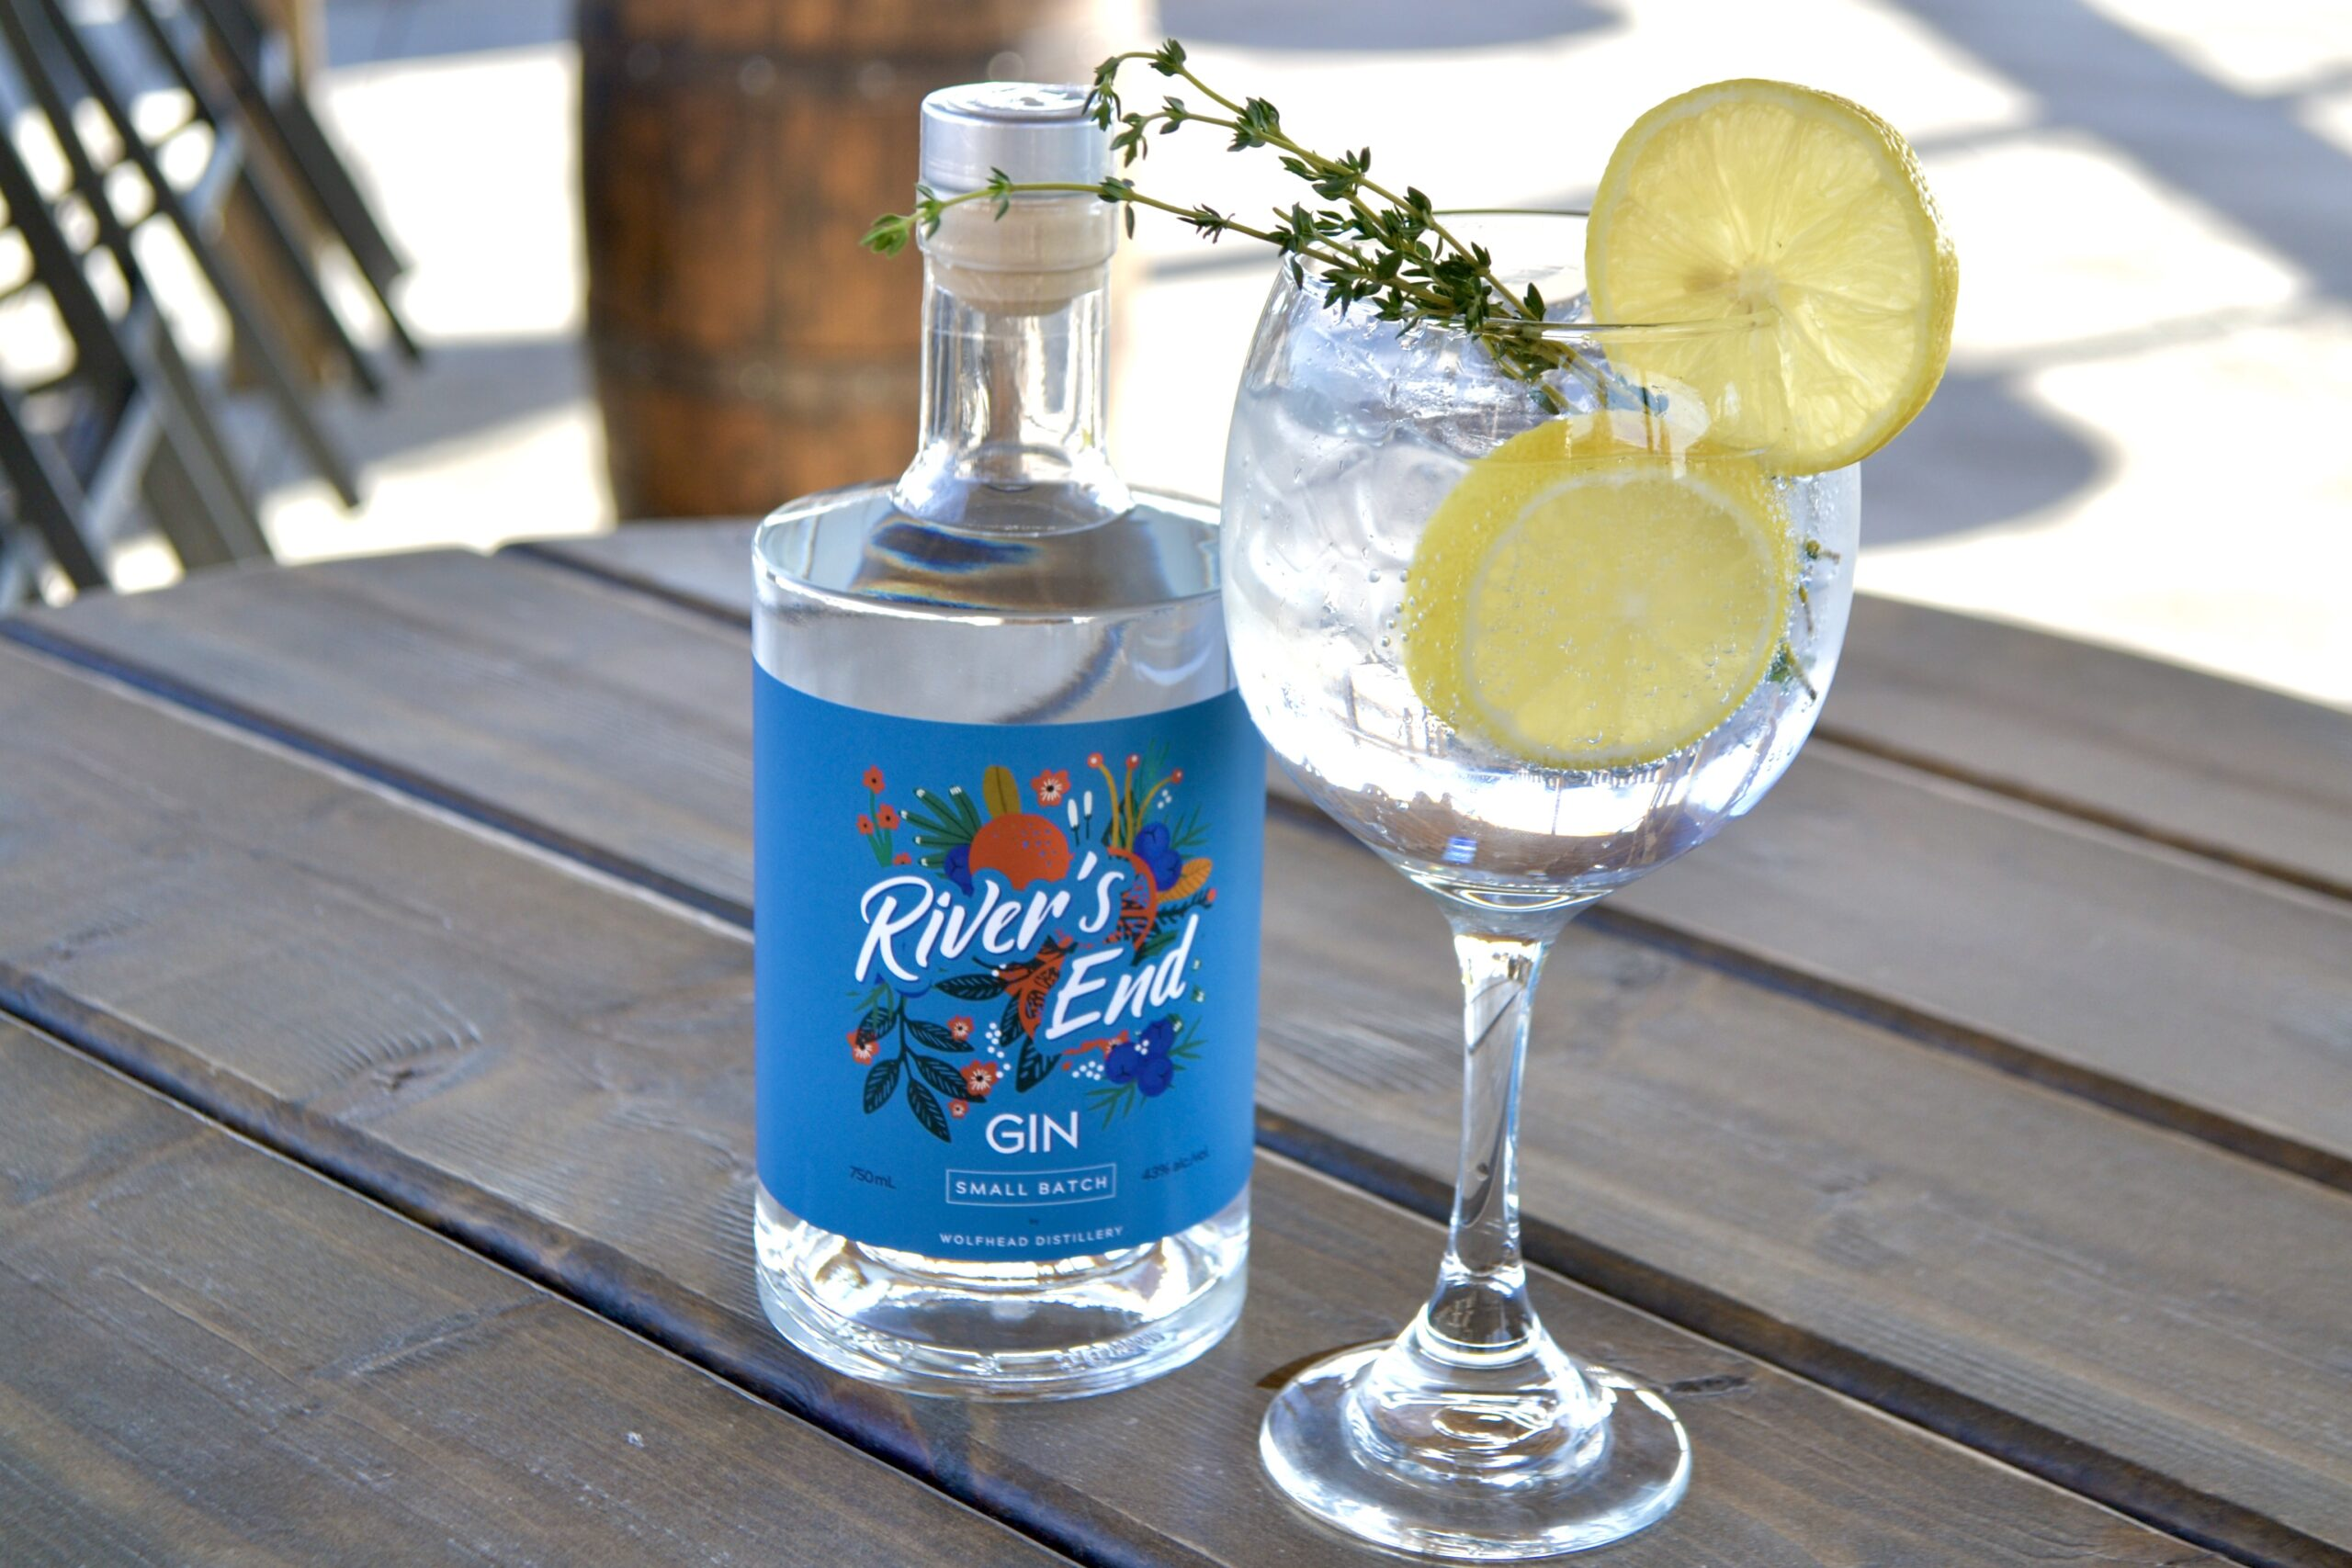 River's End Gin from Wolfhead Distillery in Amherstburg, Ontario.